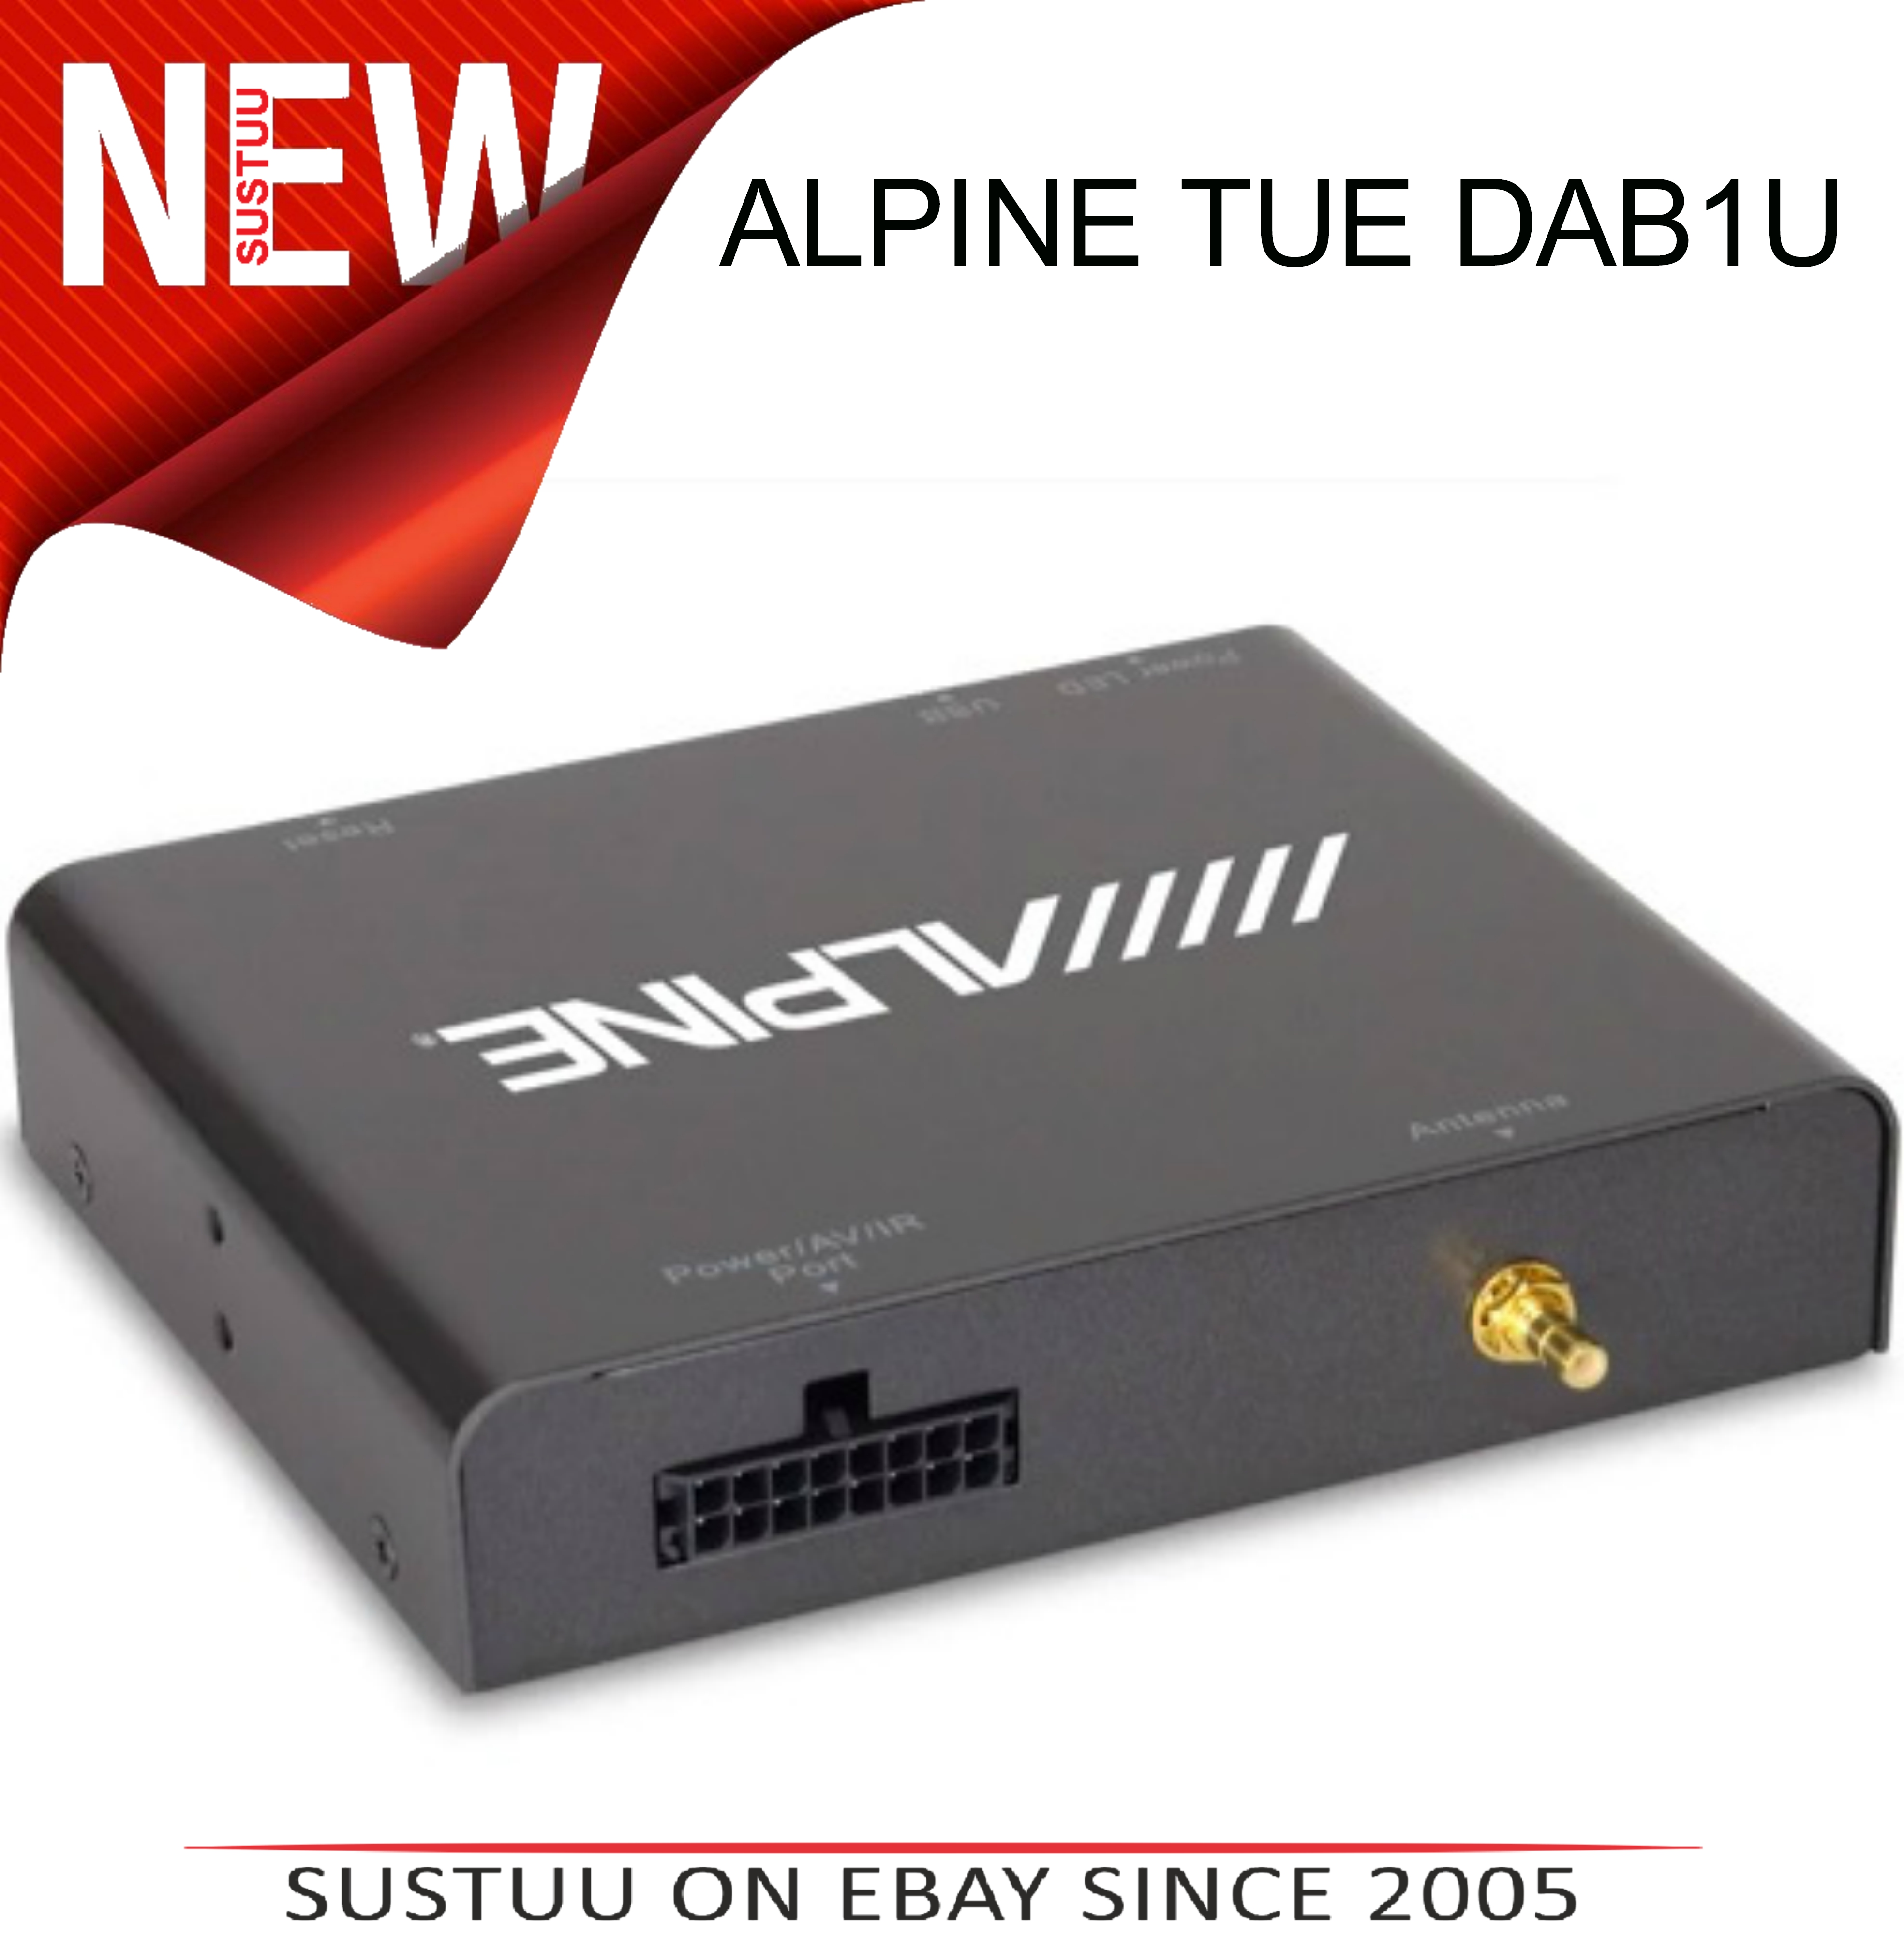 Alpine TUE-DAB1U Add On Mobile DAB/DAB+ Receiver with Direct Touch Control